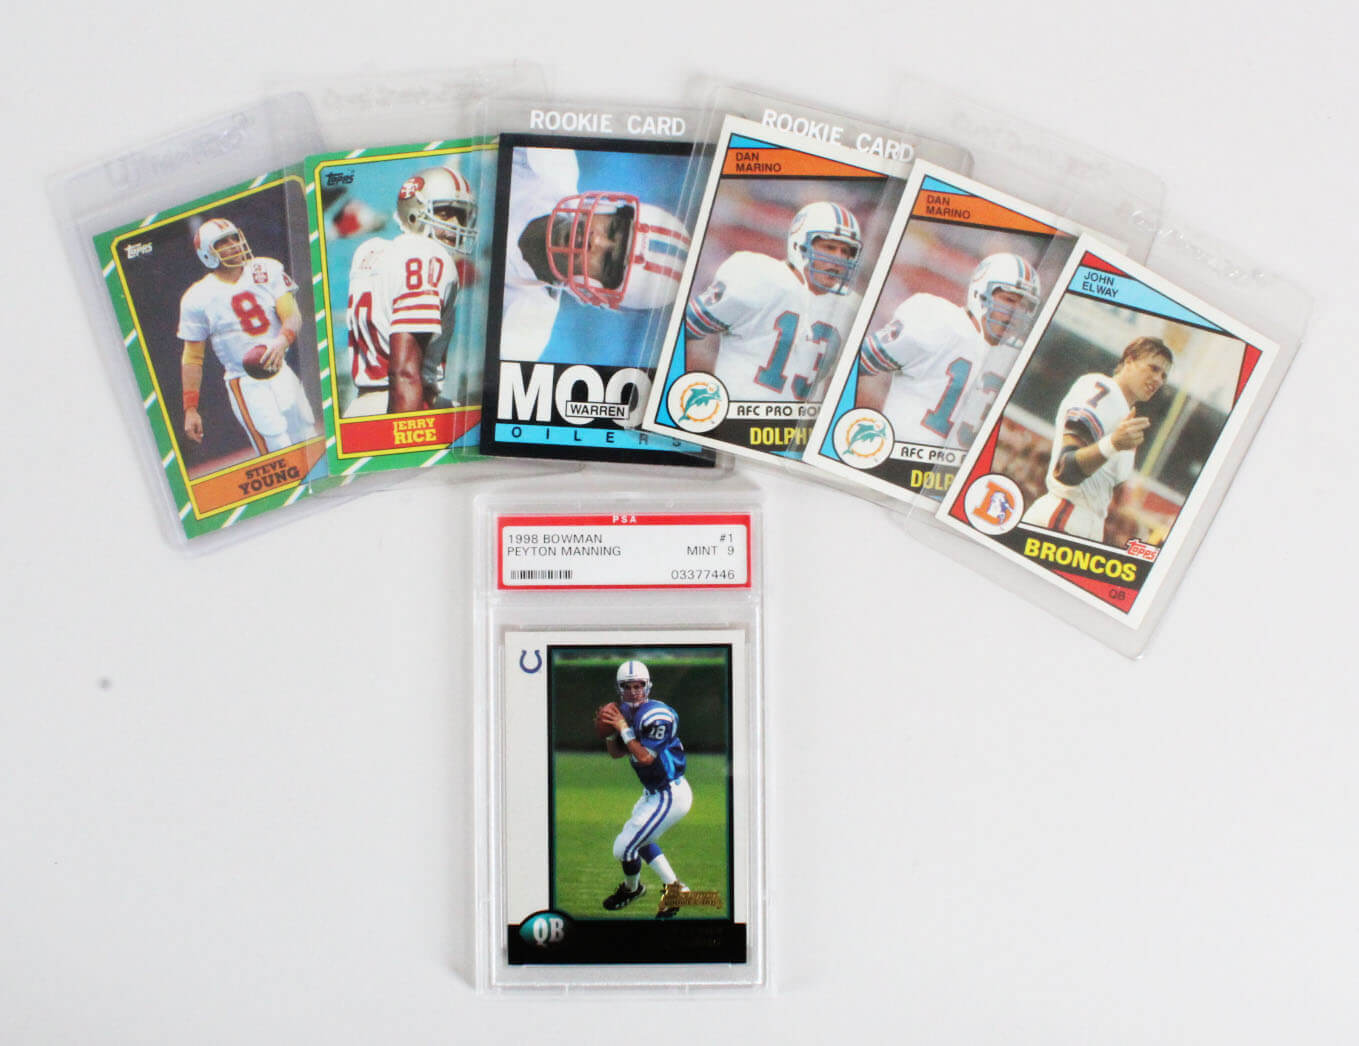 Football Rookie Card RC Lot (7) Incl. Elway, Marino, Rice, Young, Moon & Peyton Manning Graded